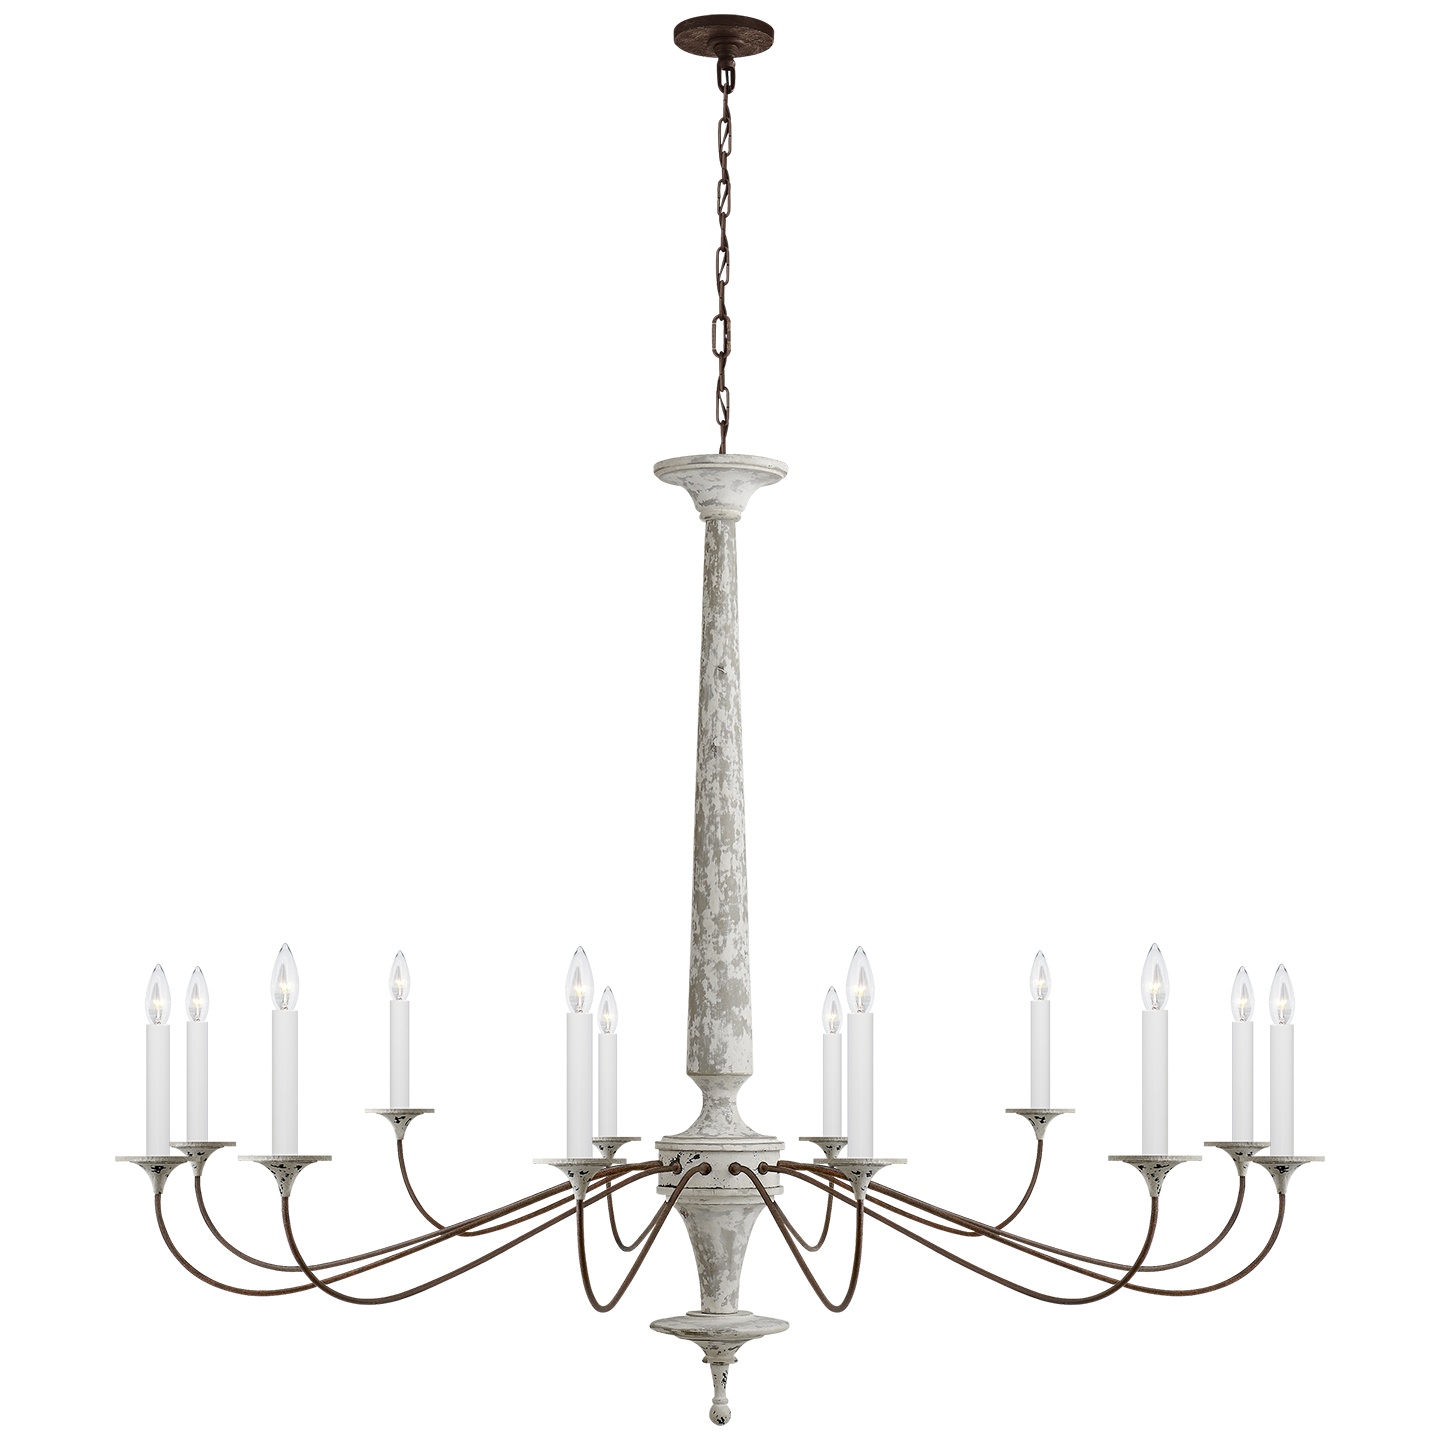 Bordeaux Grande Chandelier | Cati Es | Chandelier ceiling ... on design house light fixtures, design house chairs, design house lighting products, design house vanities, design house fans,